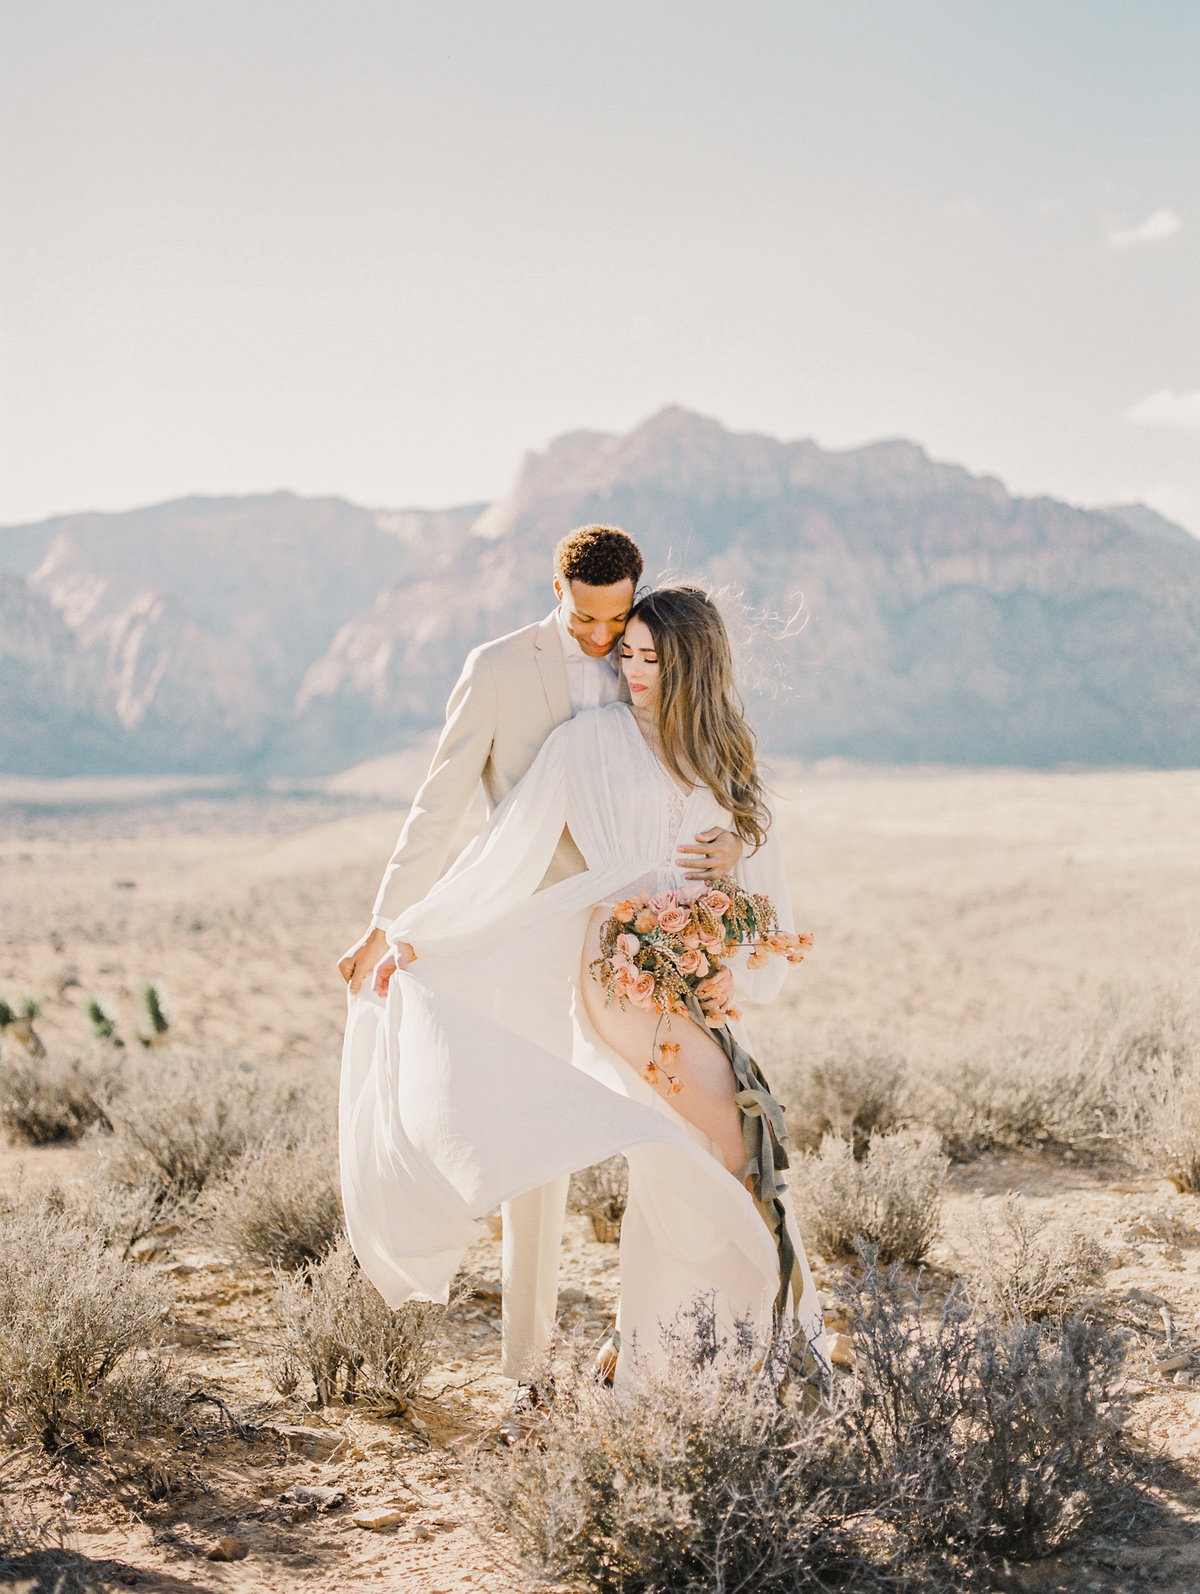 Babsie-Ly-Photography-Red-Rock-Canyon-Las-Vegas-Wedding-Elopement-Fine-Art-Film-domenica-domenica-robe-005